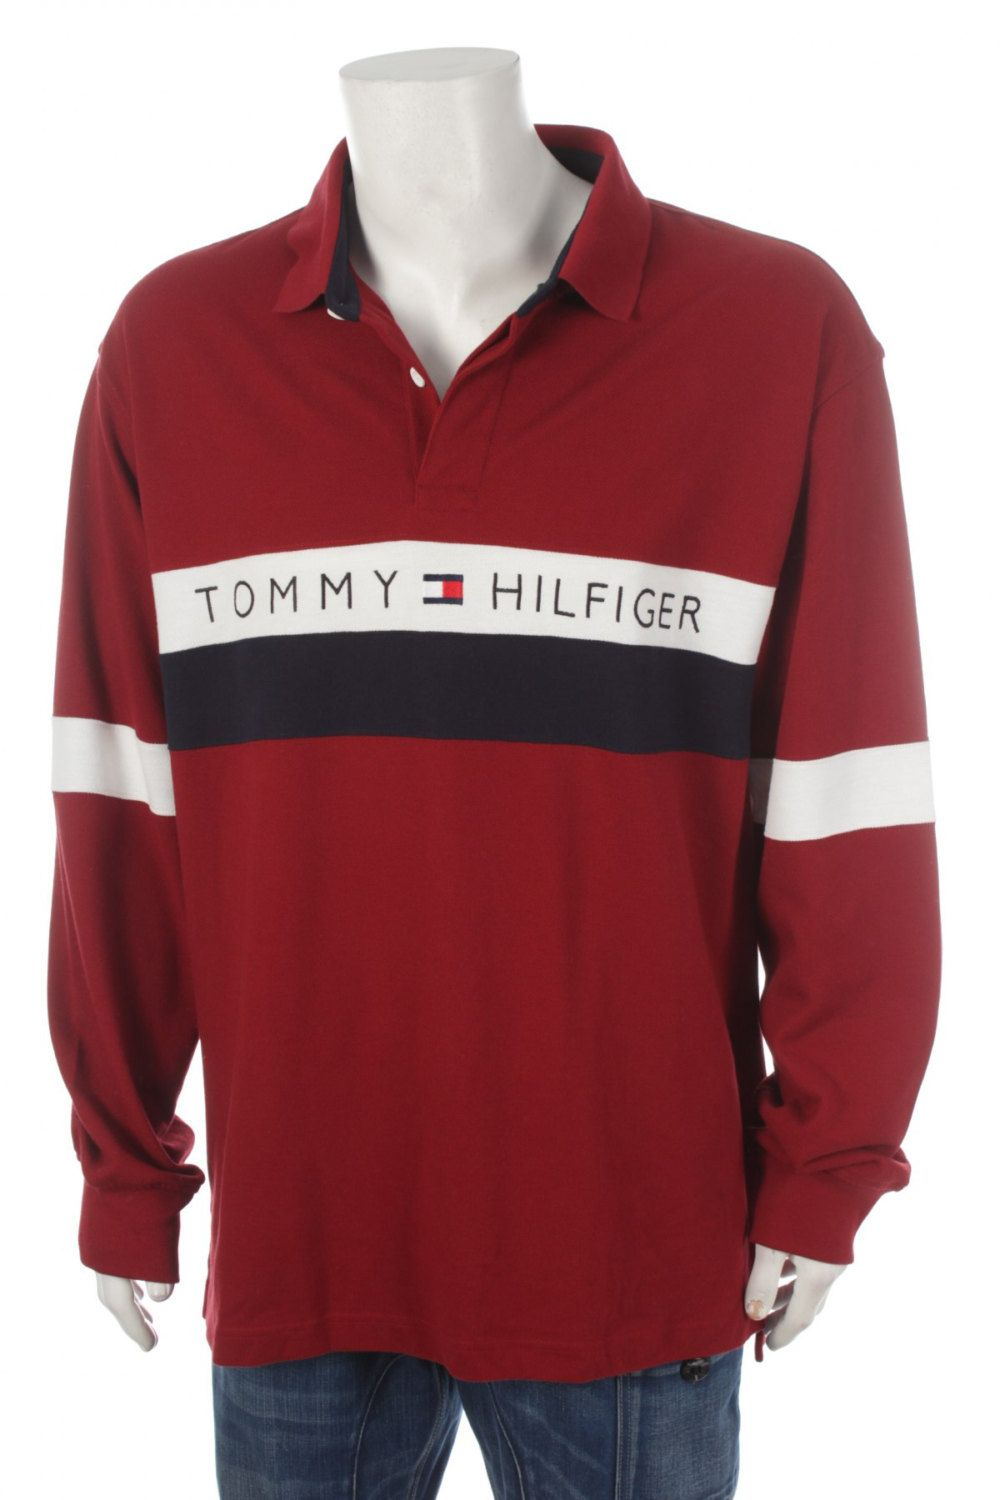 Rare Vintage 90s Tommy Hilfiger Big Logo Spell Out Polo Sweatshirt Color Block Blue White Red Size Xxl By Jeans And Hoodie Tommy Jeans Sweatshirt Inspiration